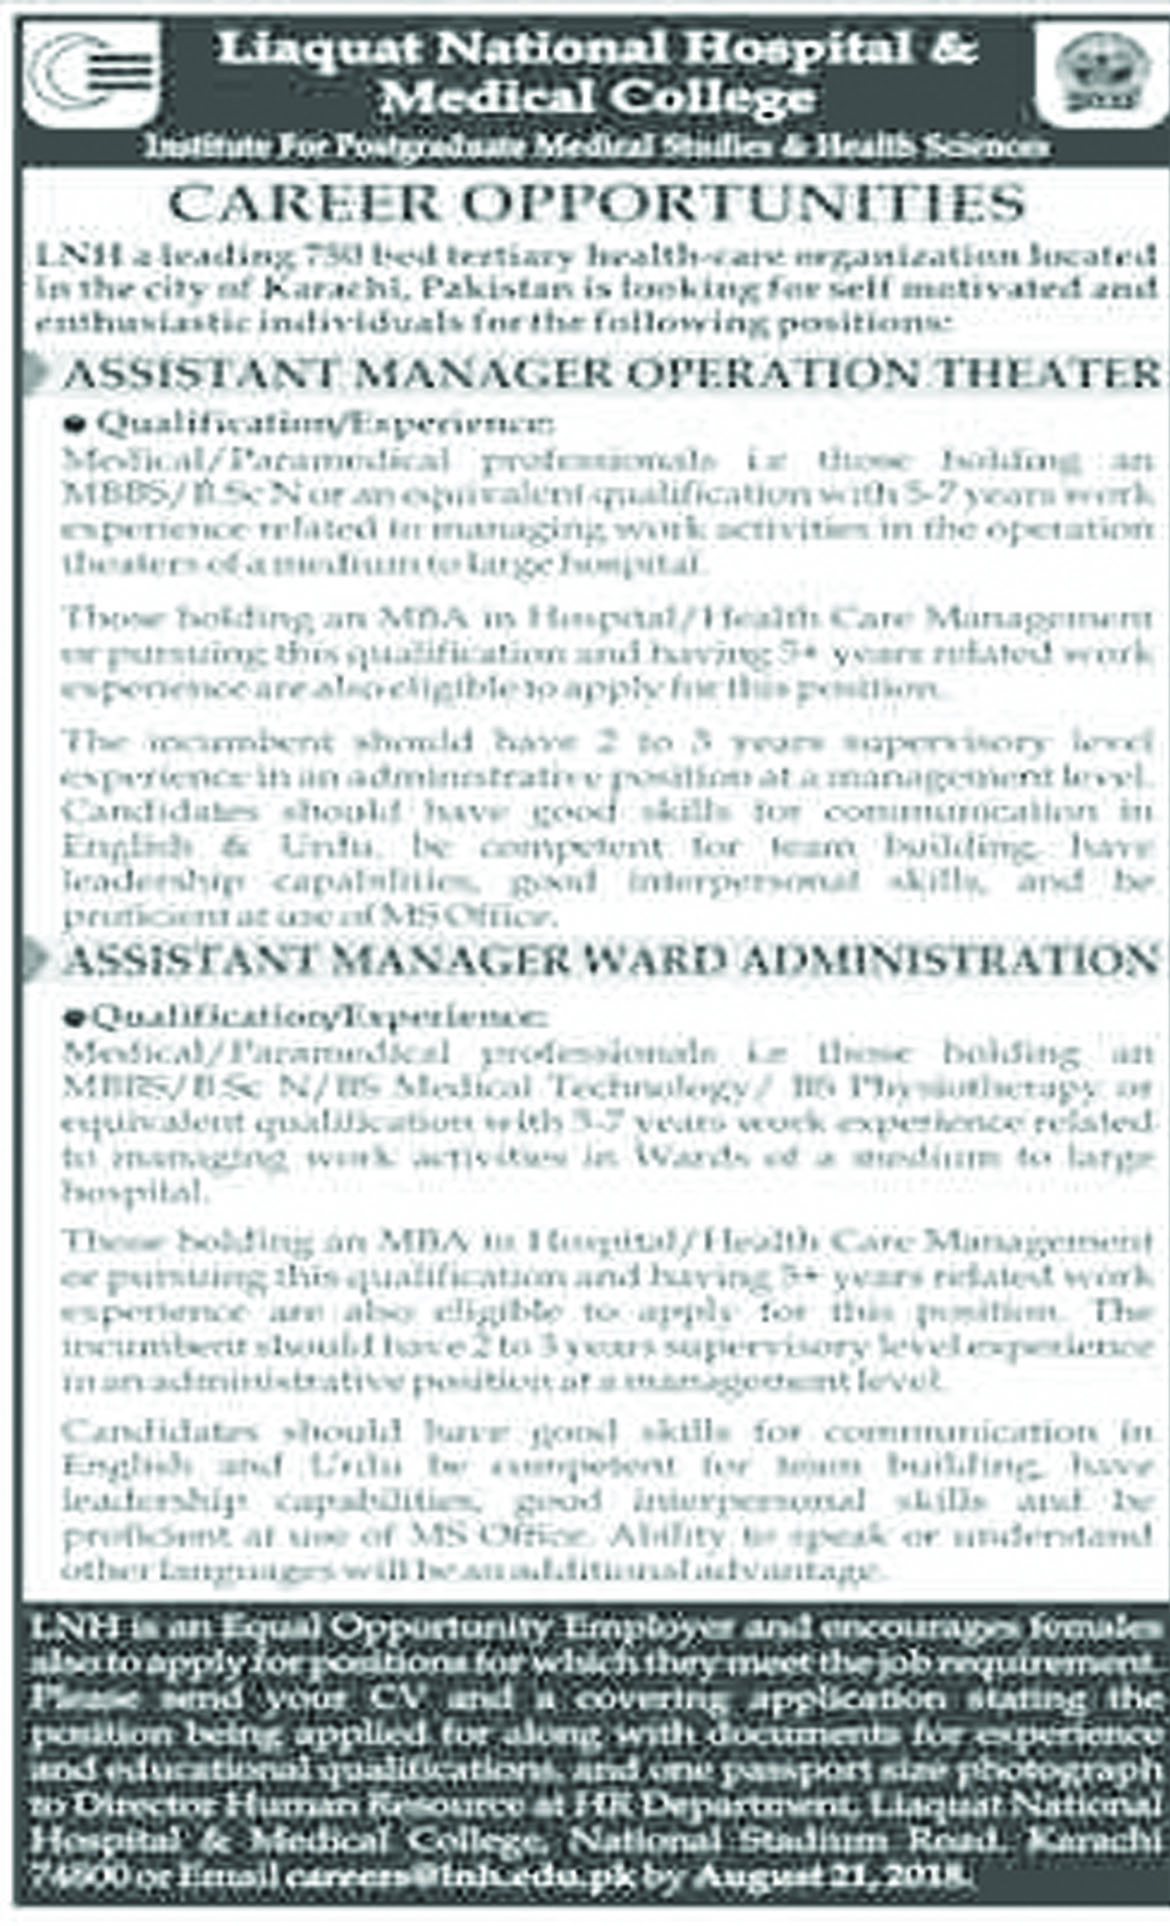 Job In Liaquat National Hospital And Medical College 13 Aug 2018